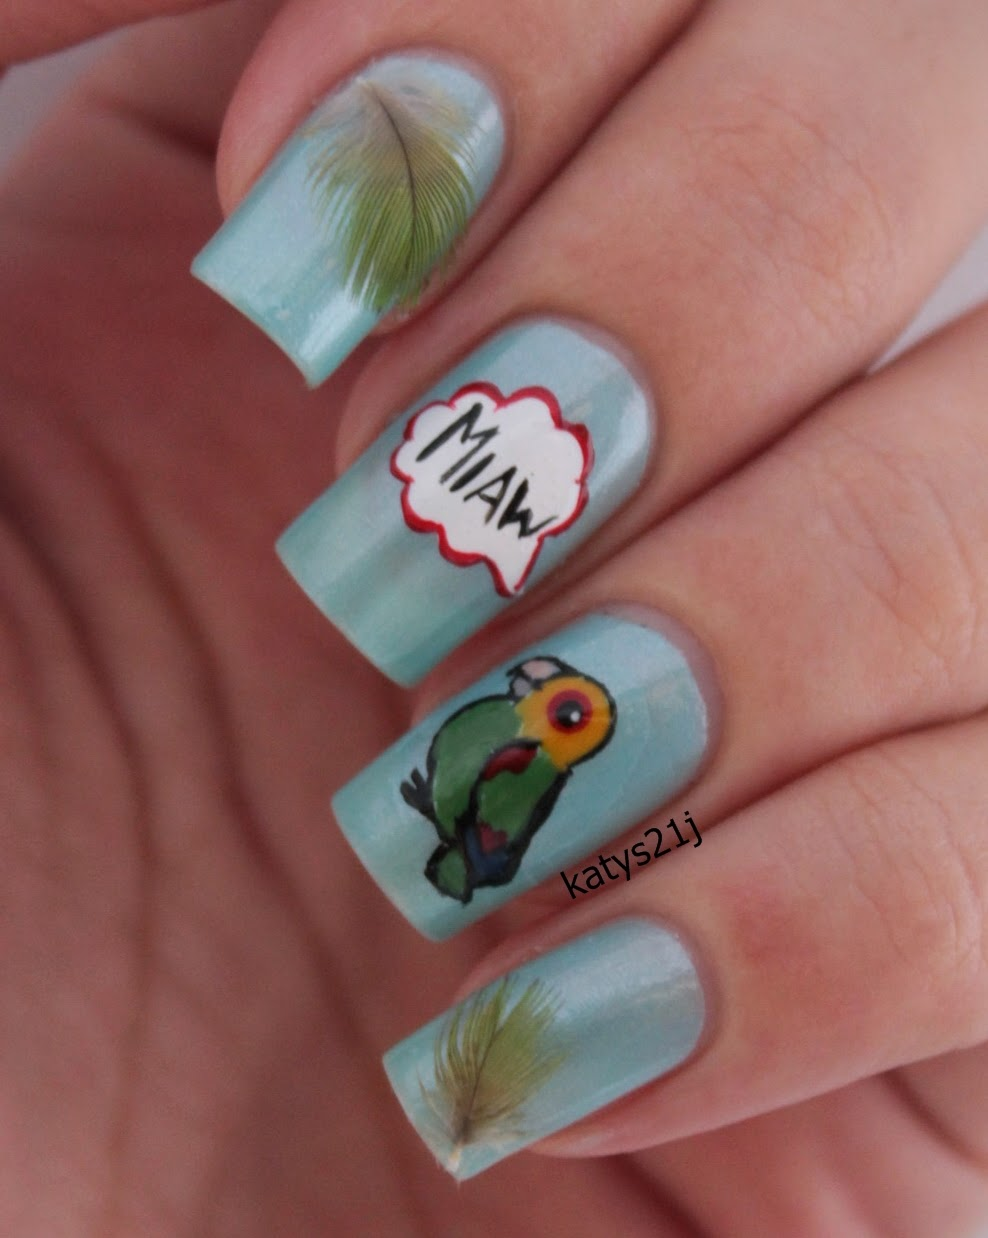 My Nail Art Journal: Amazon Parrot Nails Inspired